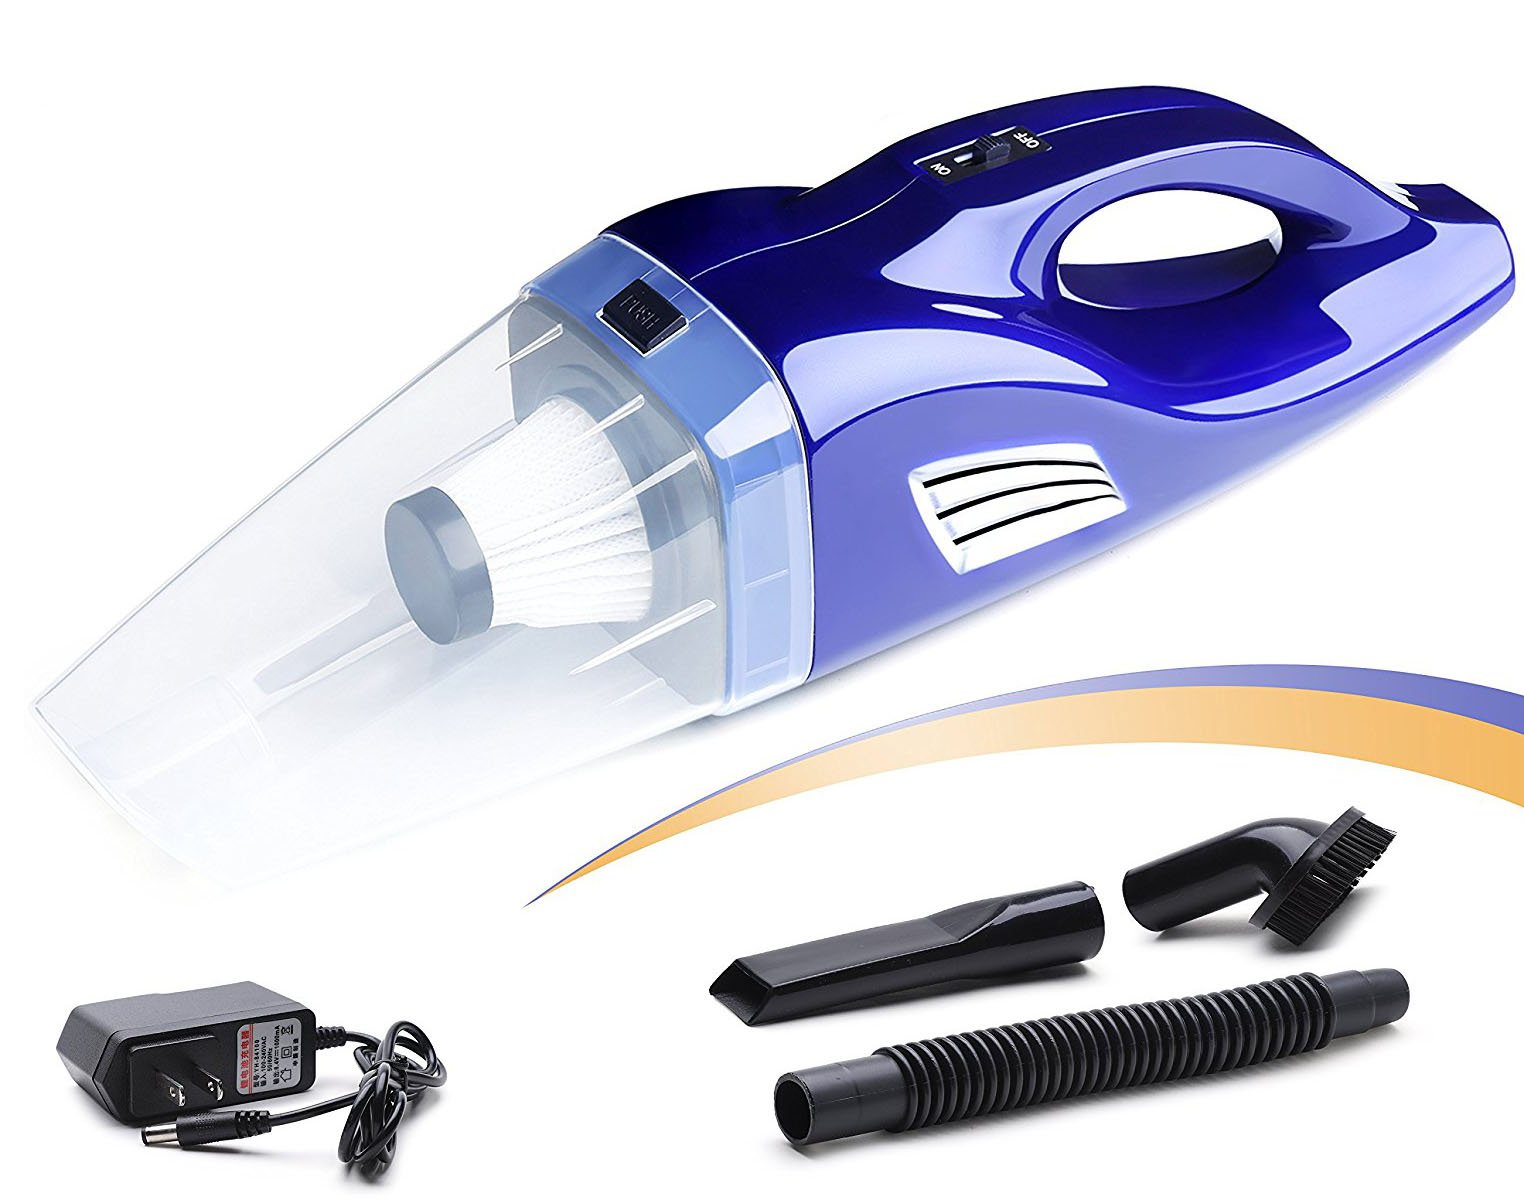 Handheld Vacuum - Portable Cordless Hand Vacuum Cleaner with Rechargeable lithium Battery for Cars, Home, Pet Hairs - Wet & Dry